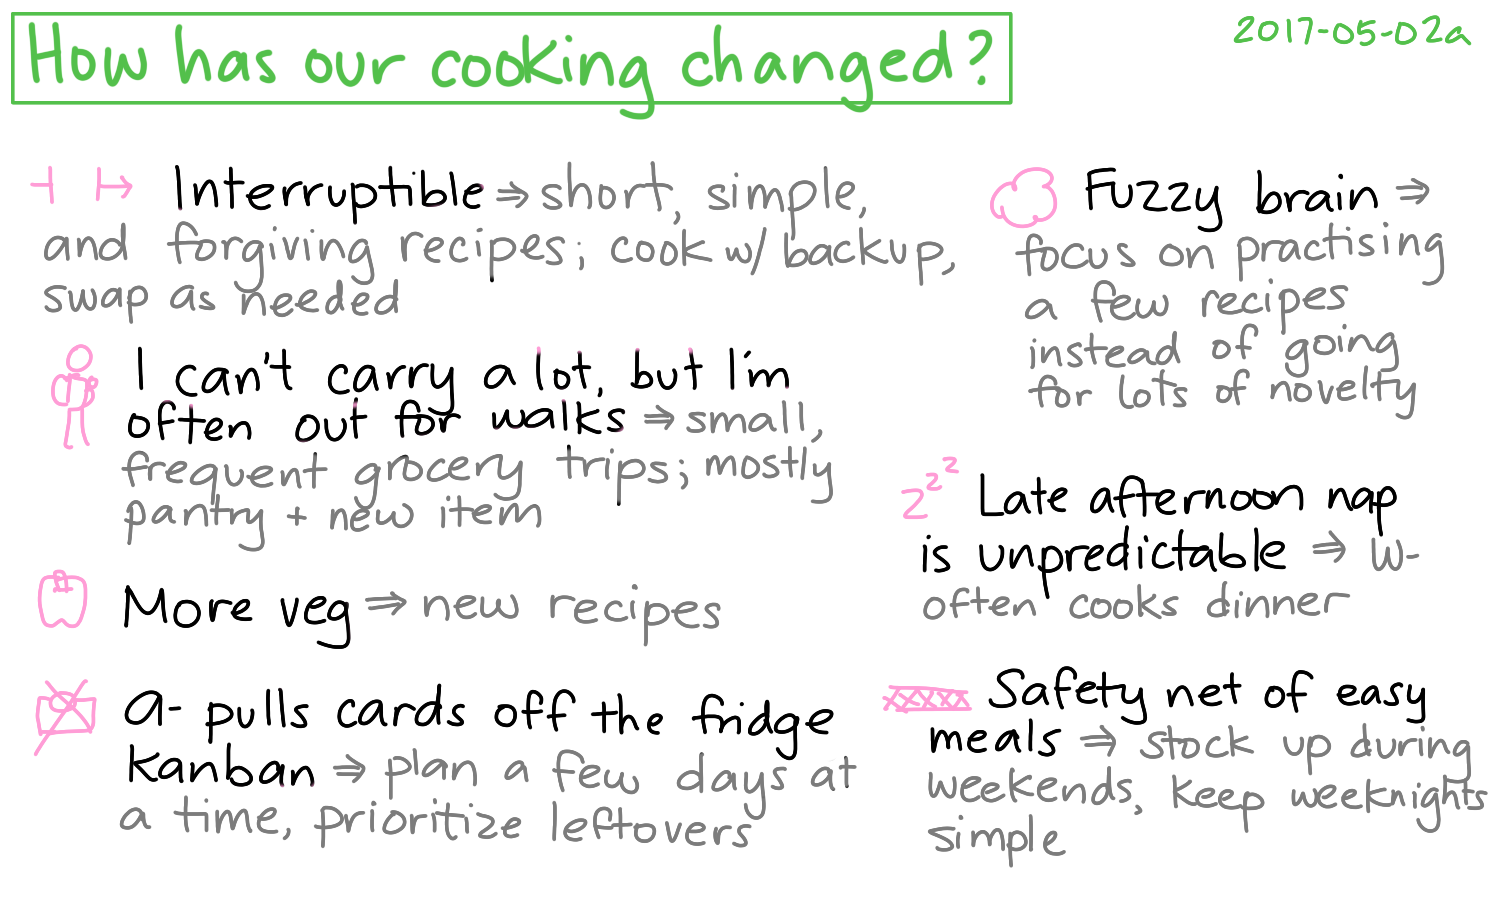 2017-05-02a How has our cooking changed #delta #review #parenting #baby #cooking.png